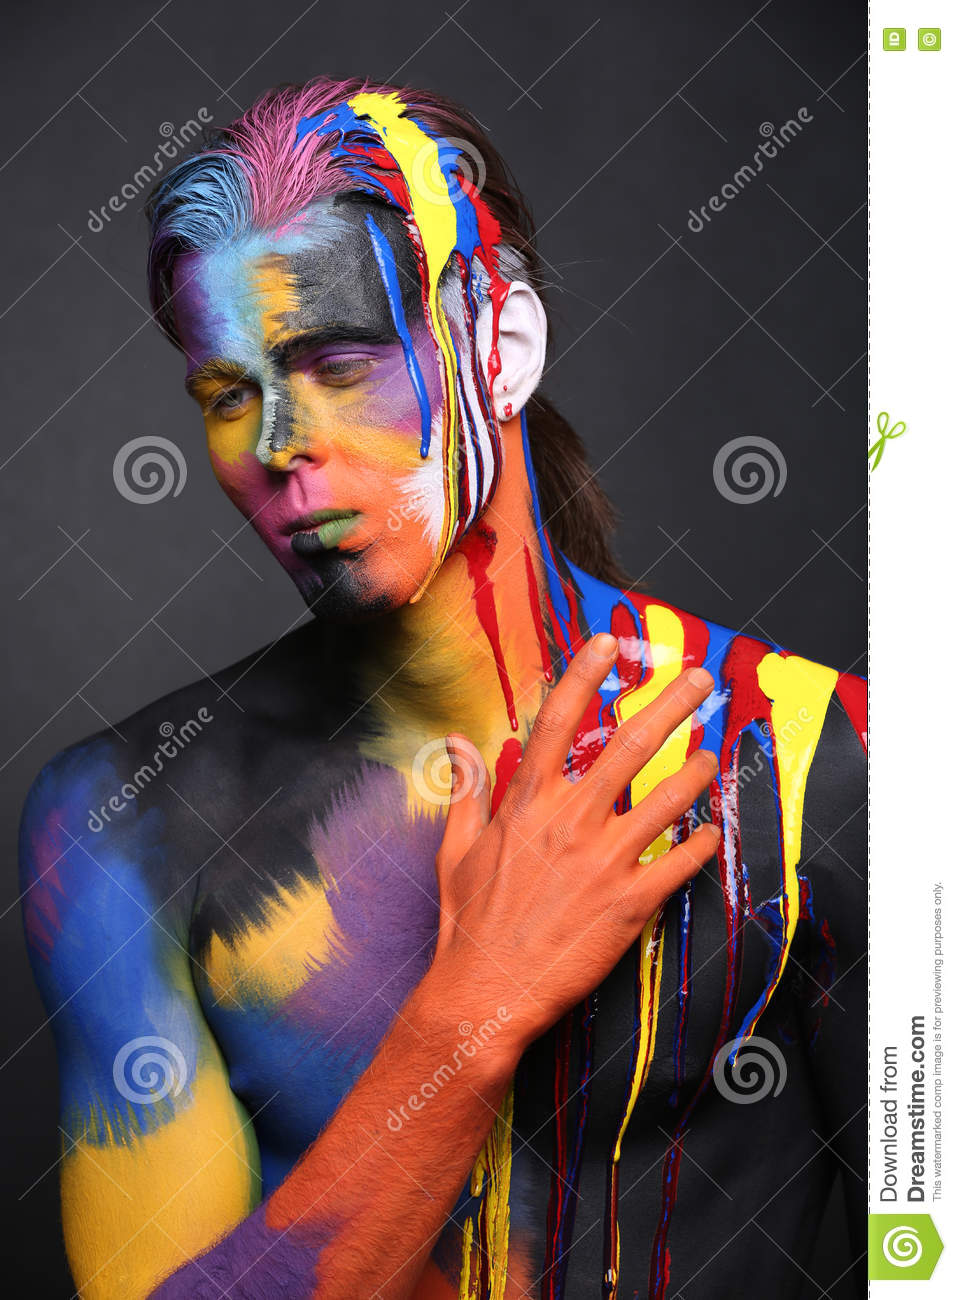 Portrait Body Art Of A Man Painted With Holi Colors Stock Photo Image Of Muscular Holi 73706602